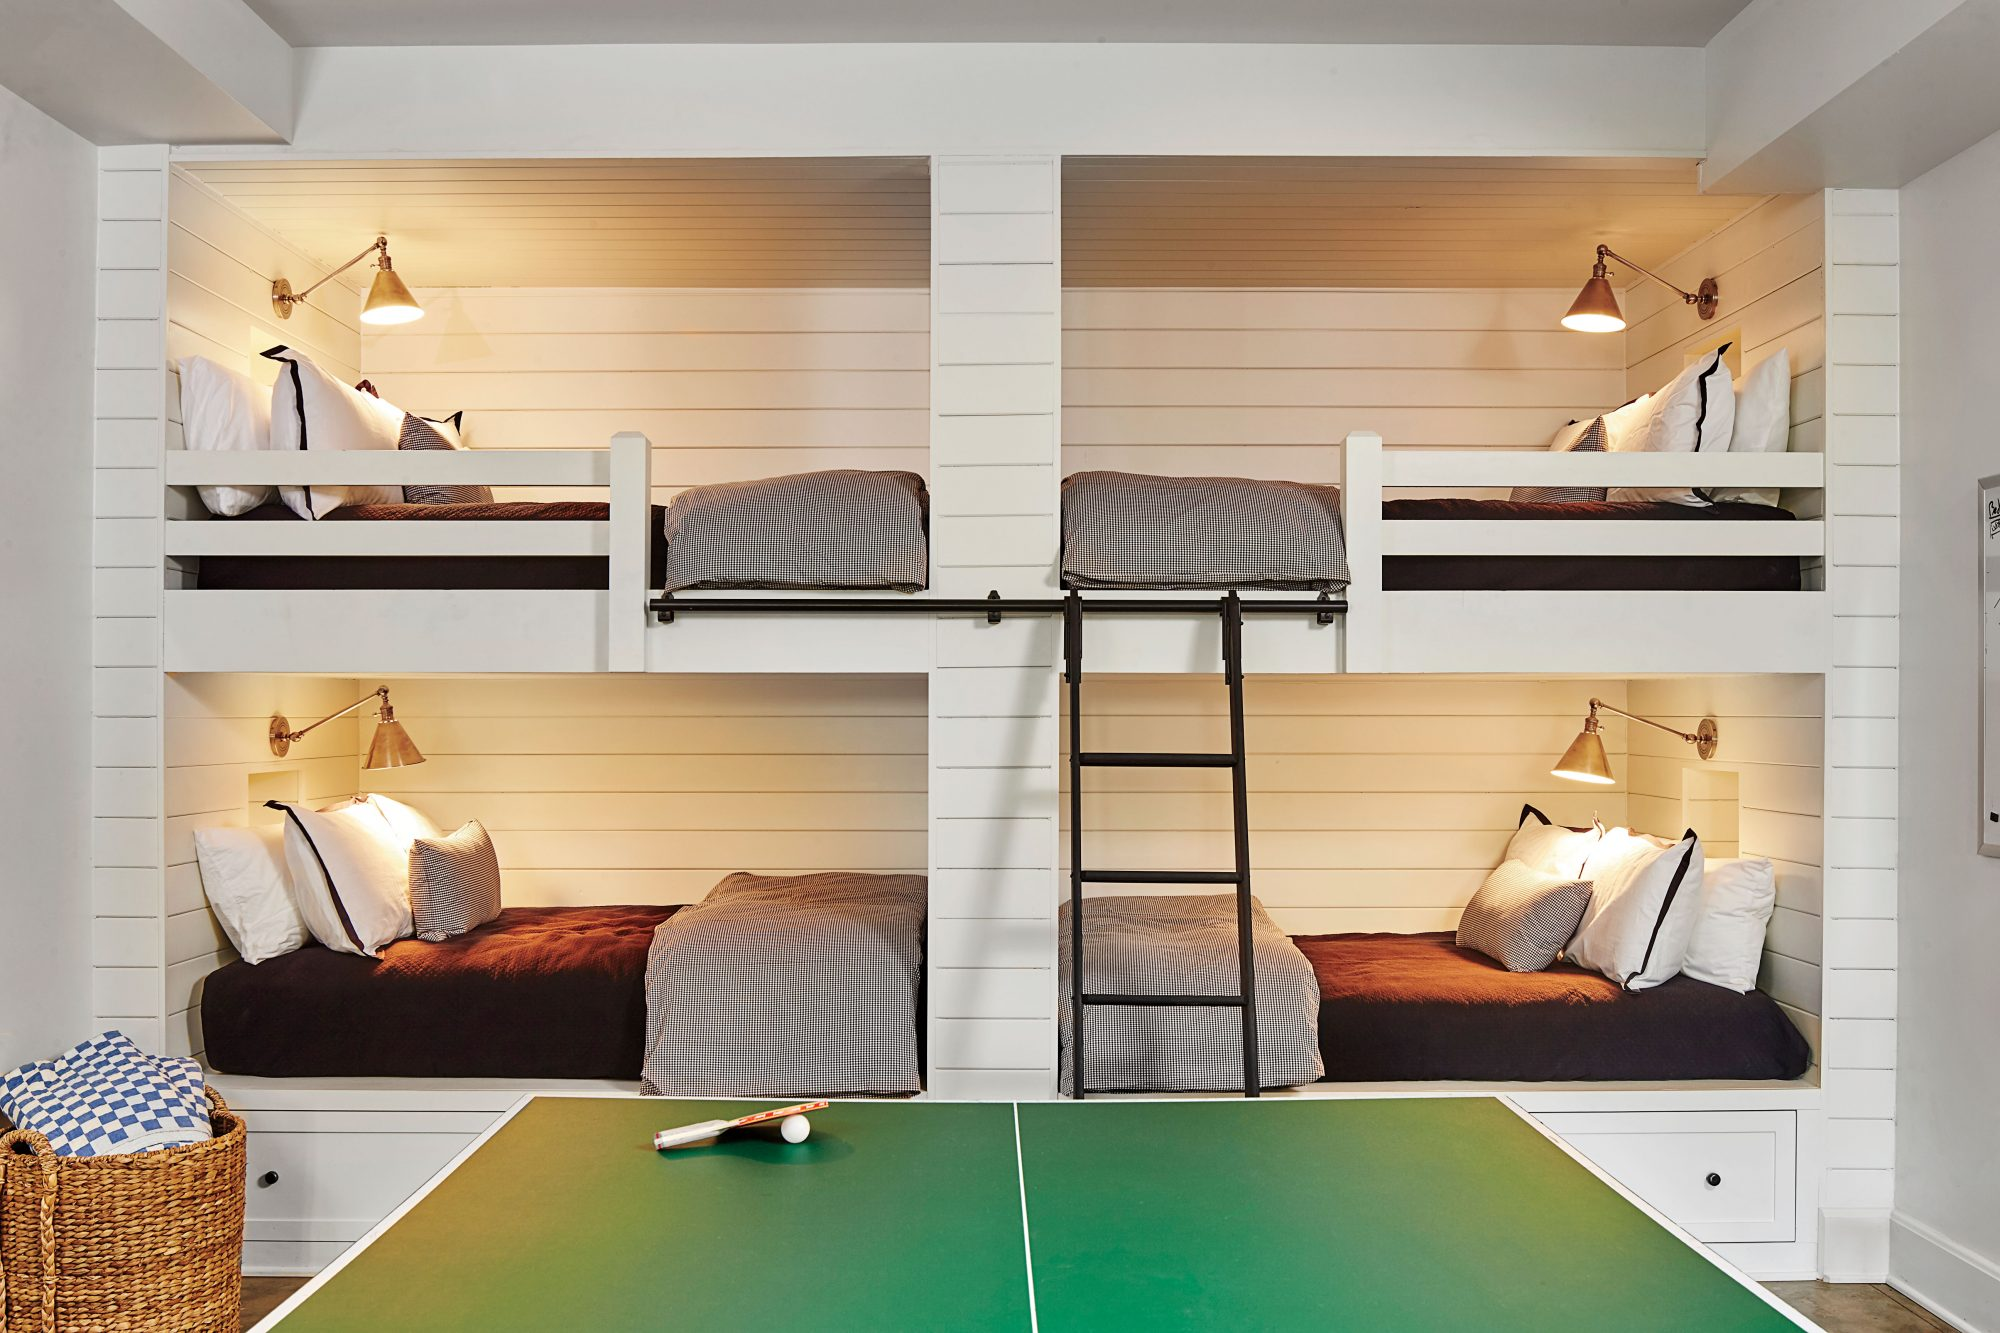 6. The Bunk Room